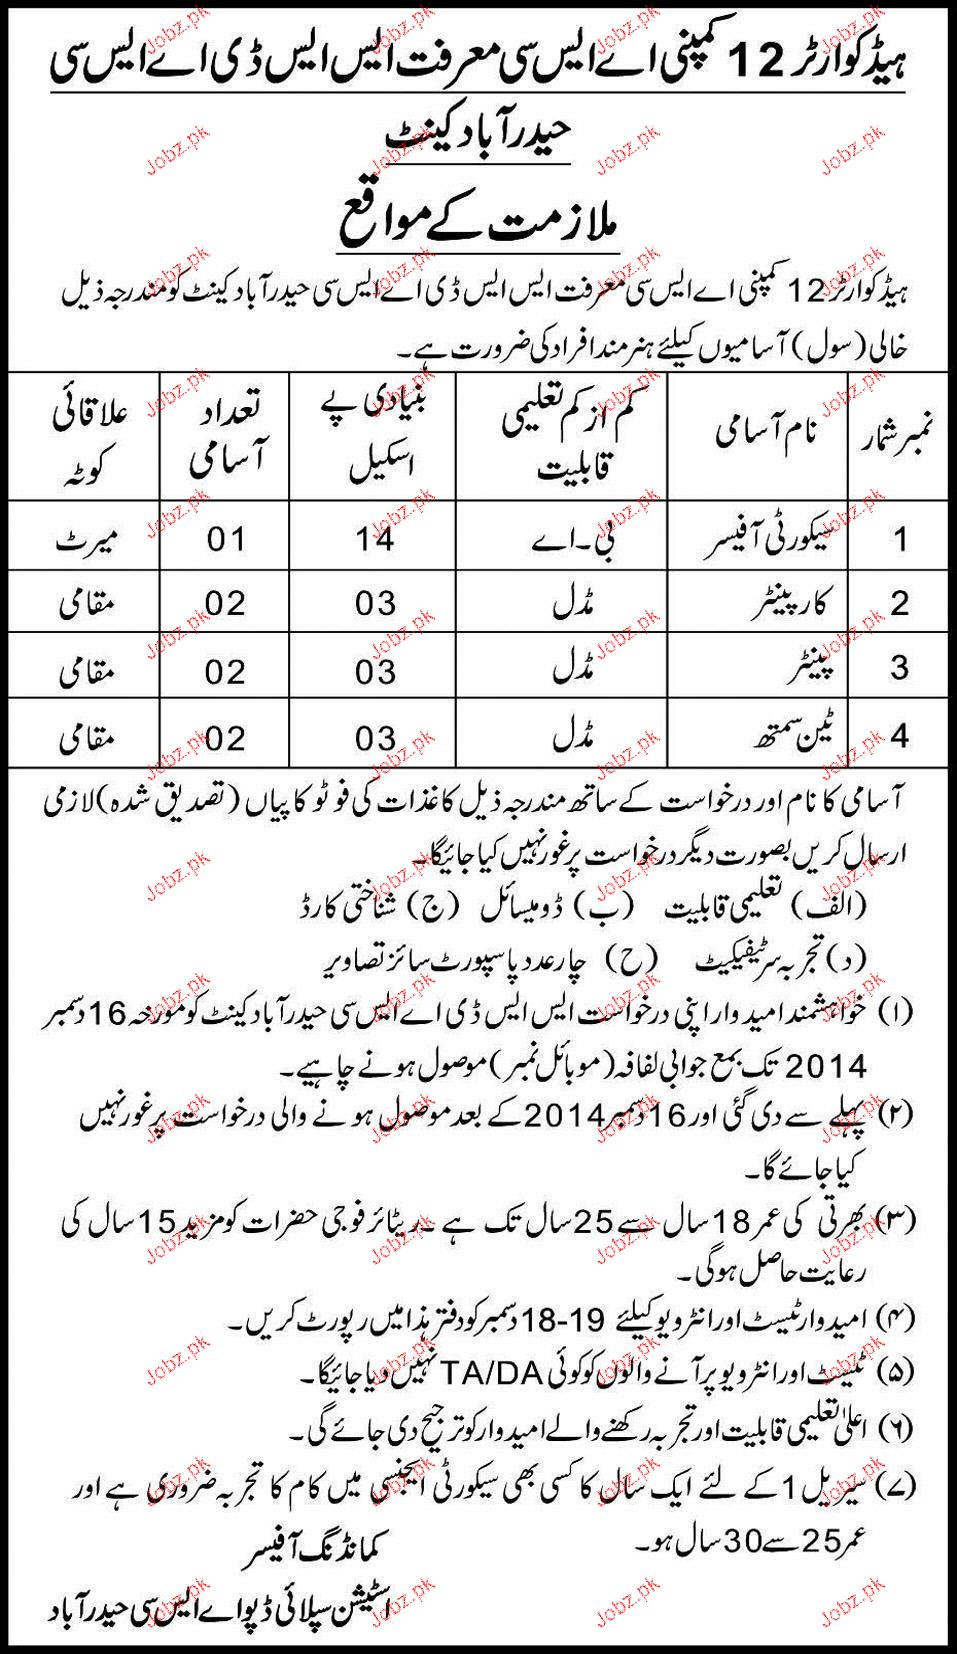 Security Officers, Carpenters, Painters Job Opportunity